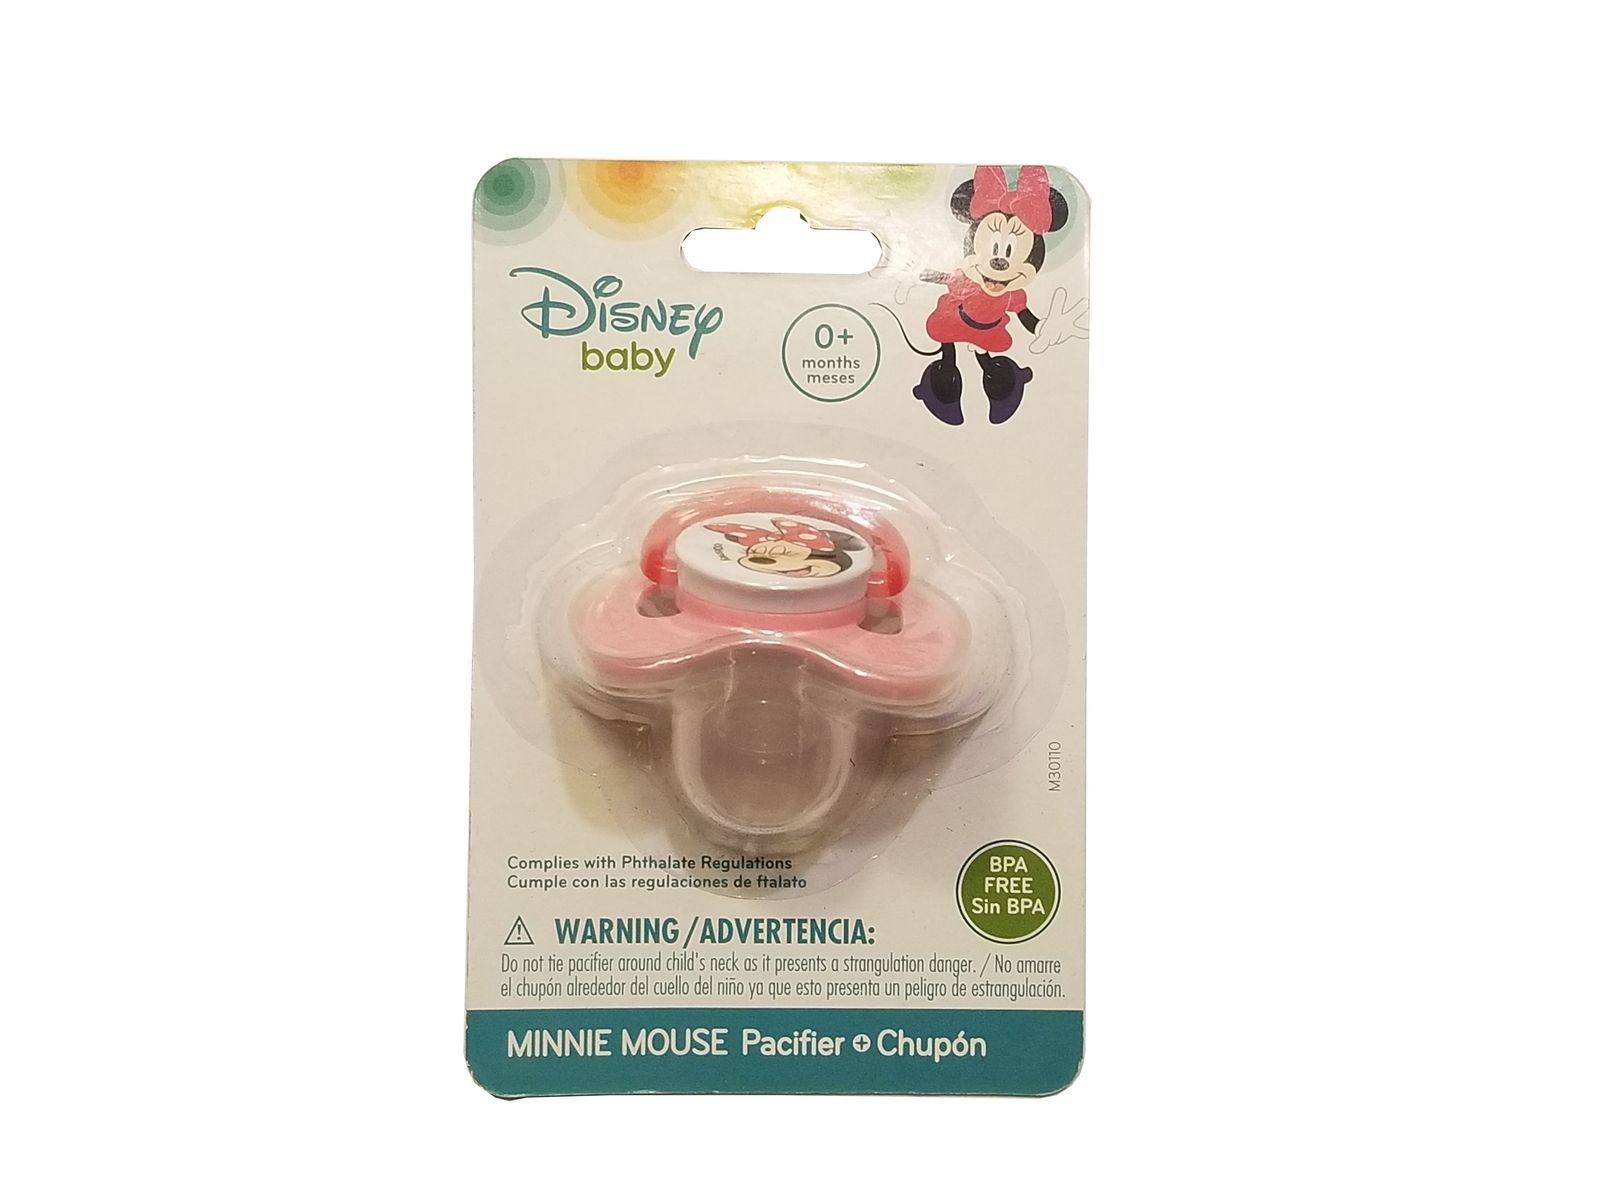 Minnie mouse pacifier